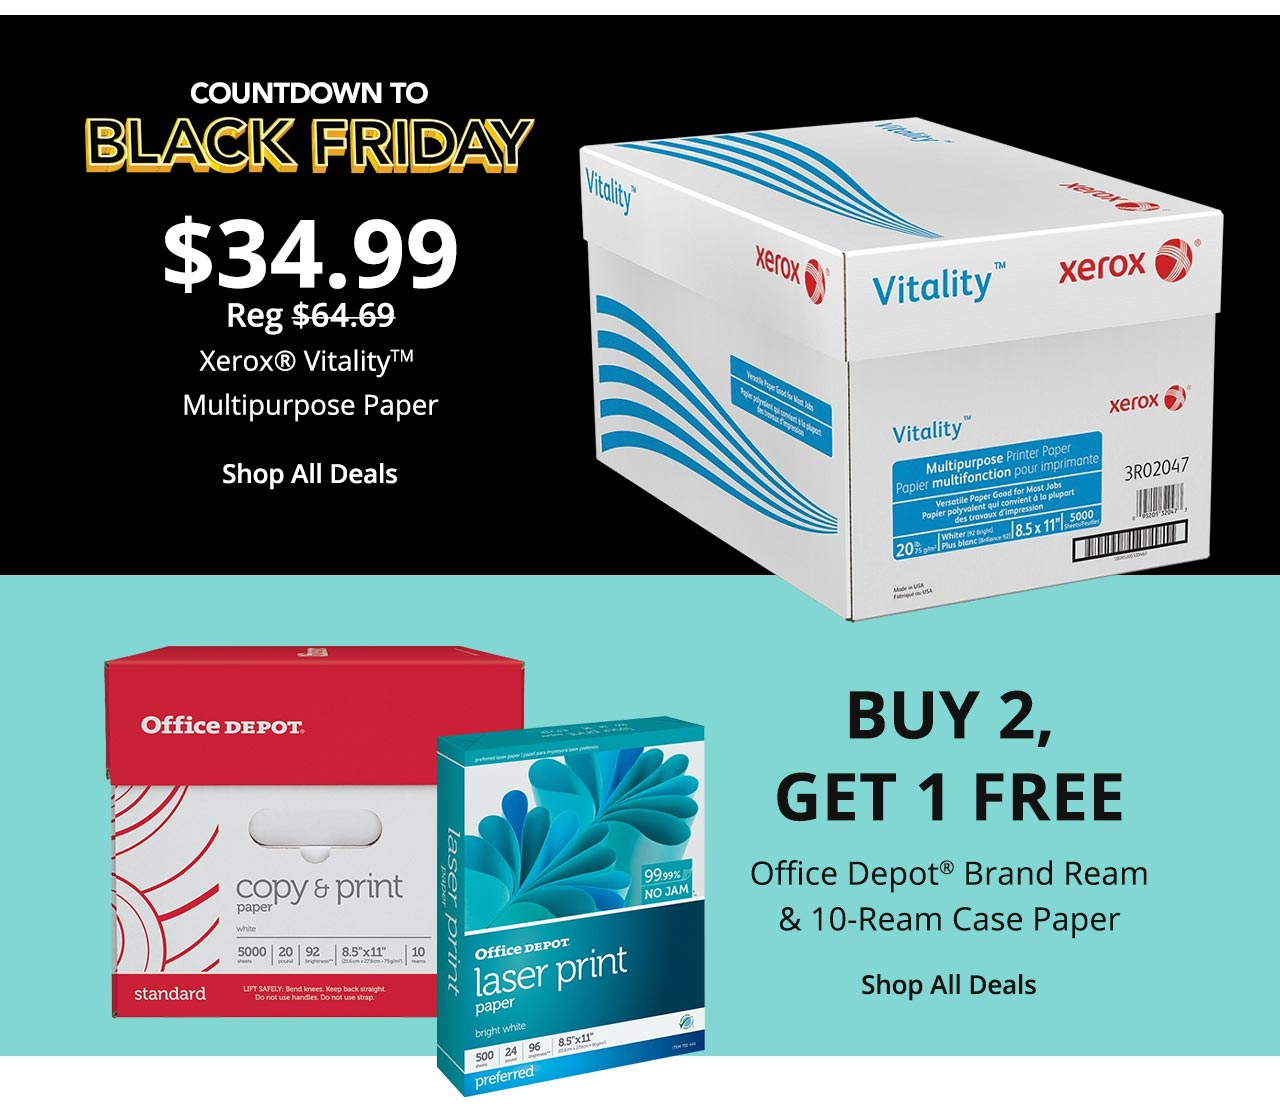 Xerox Vitality for $34.99 / with Buy 2, get 1 Free